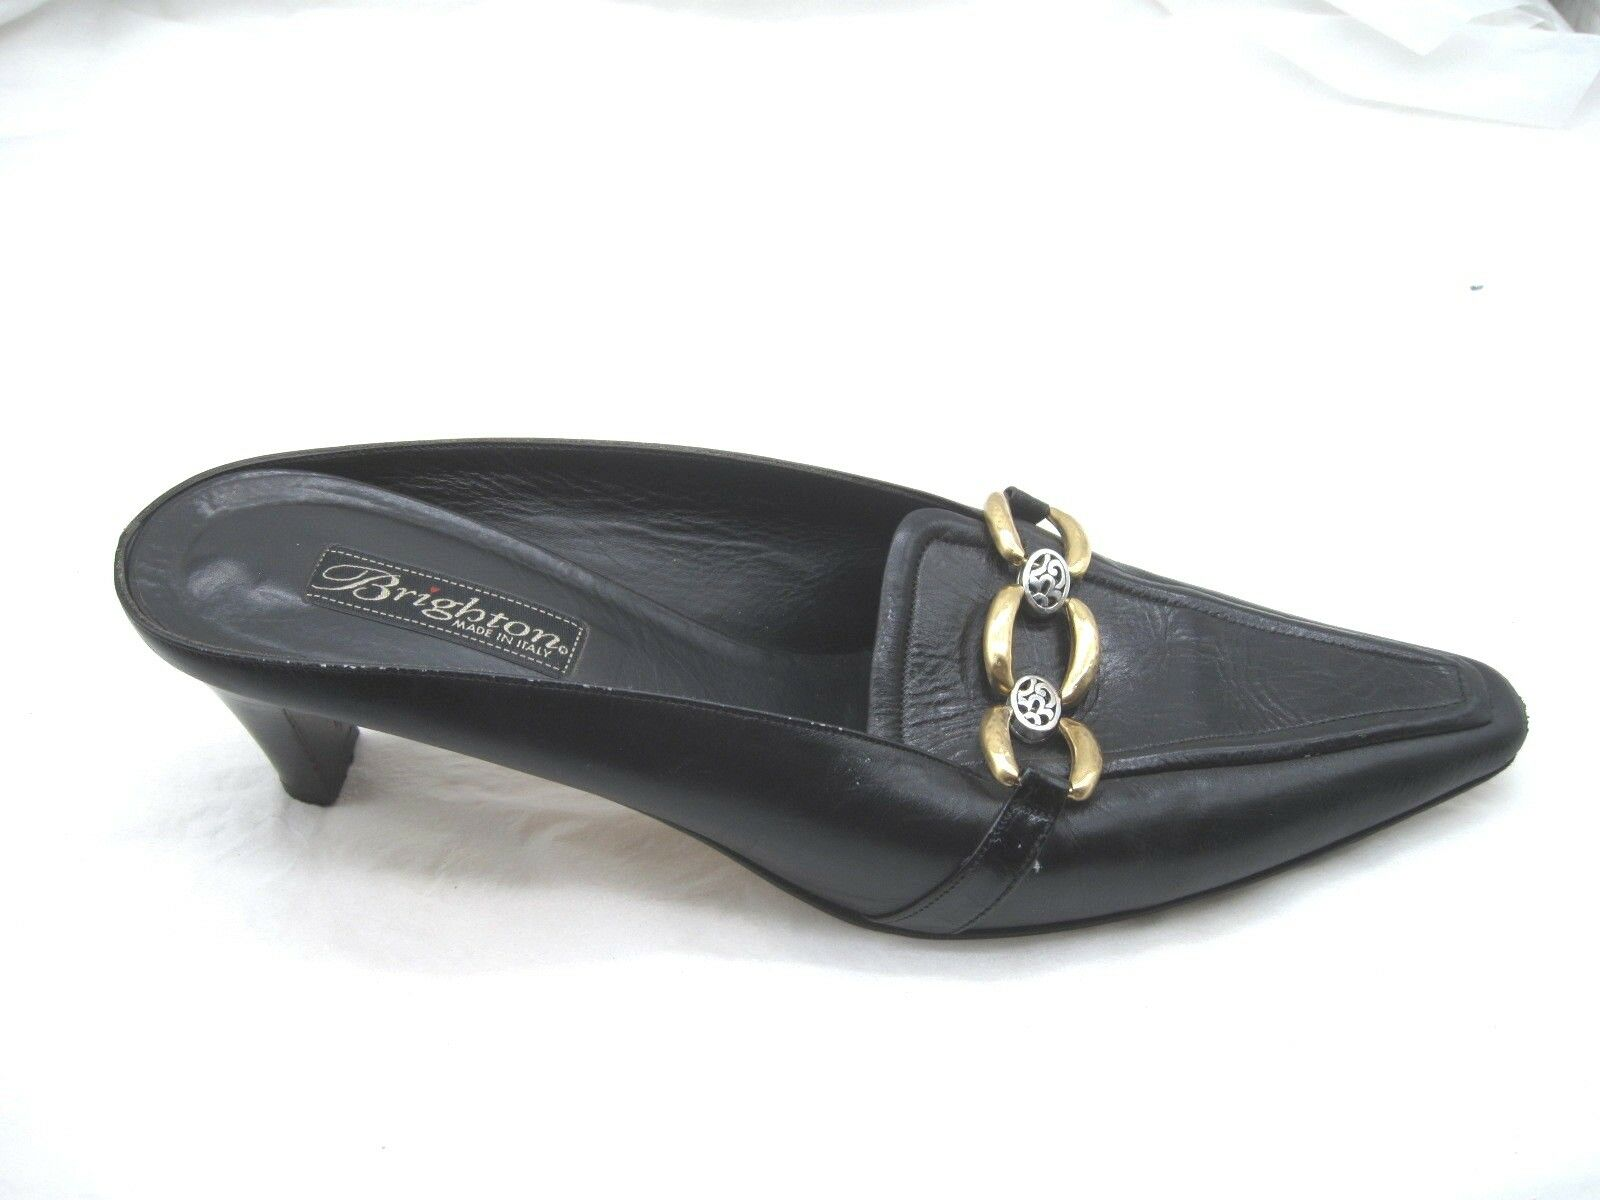 Brighton 9M  40 Tosca black leather chain Italian mules womens heels pumps shoes